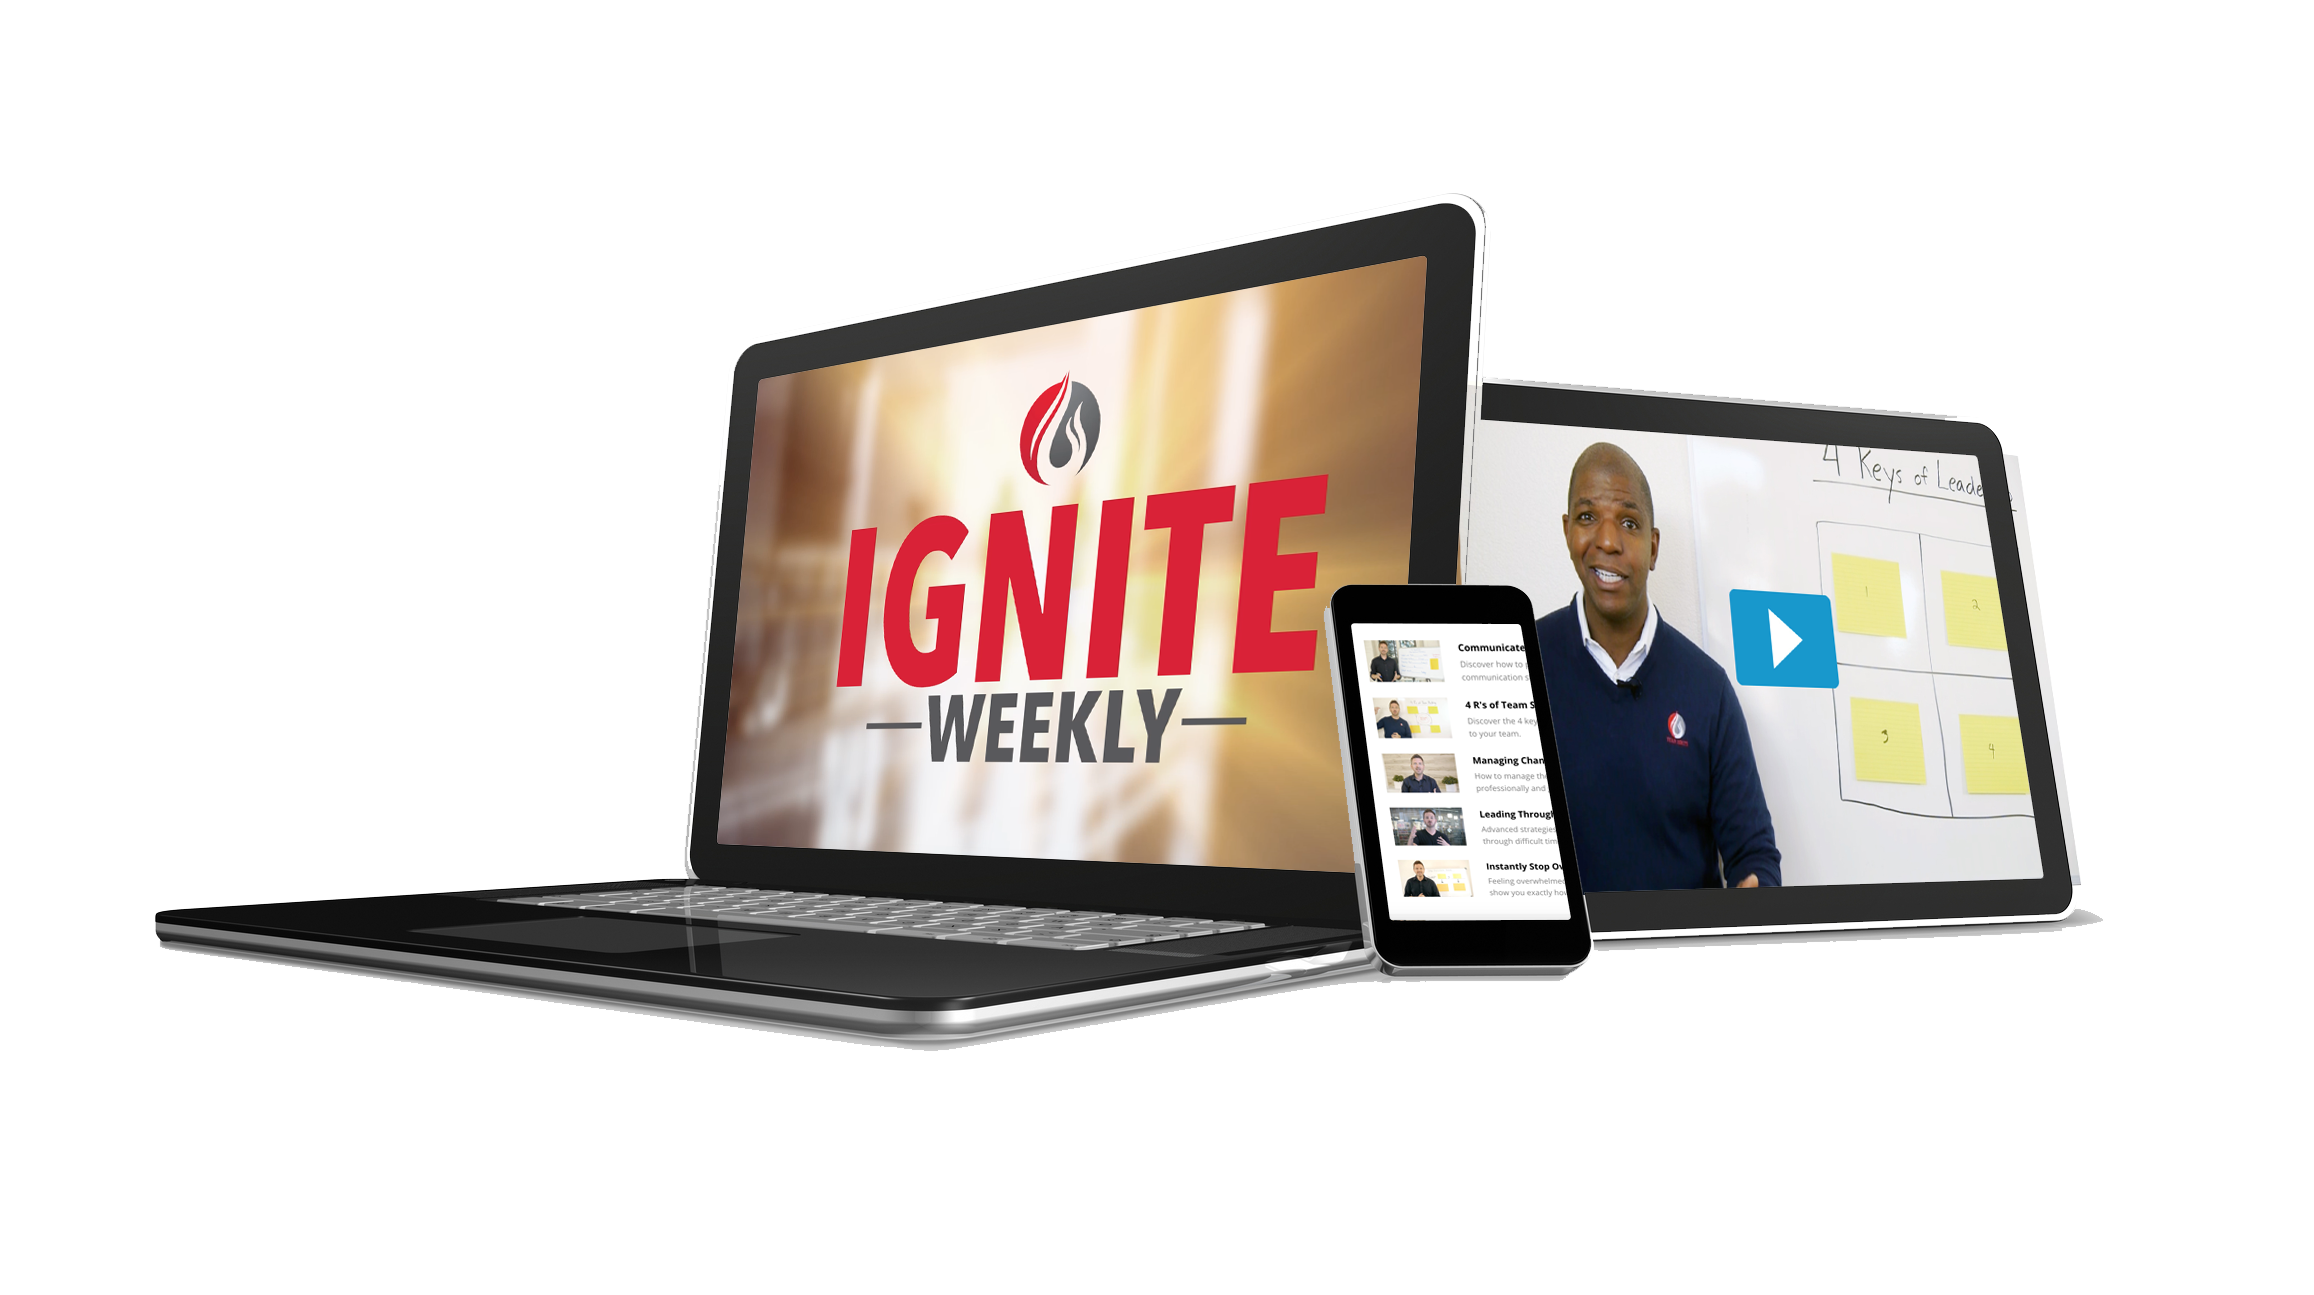 ignite weekly in computer